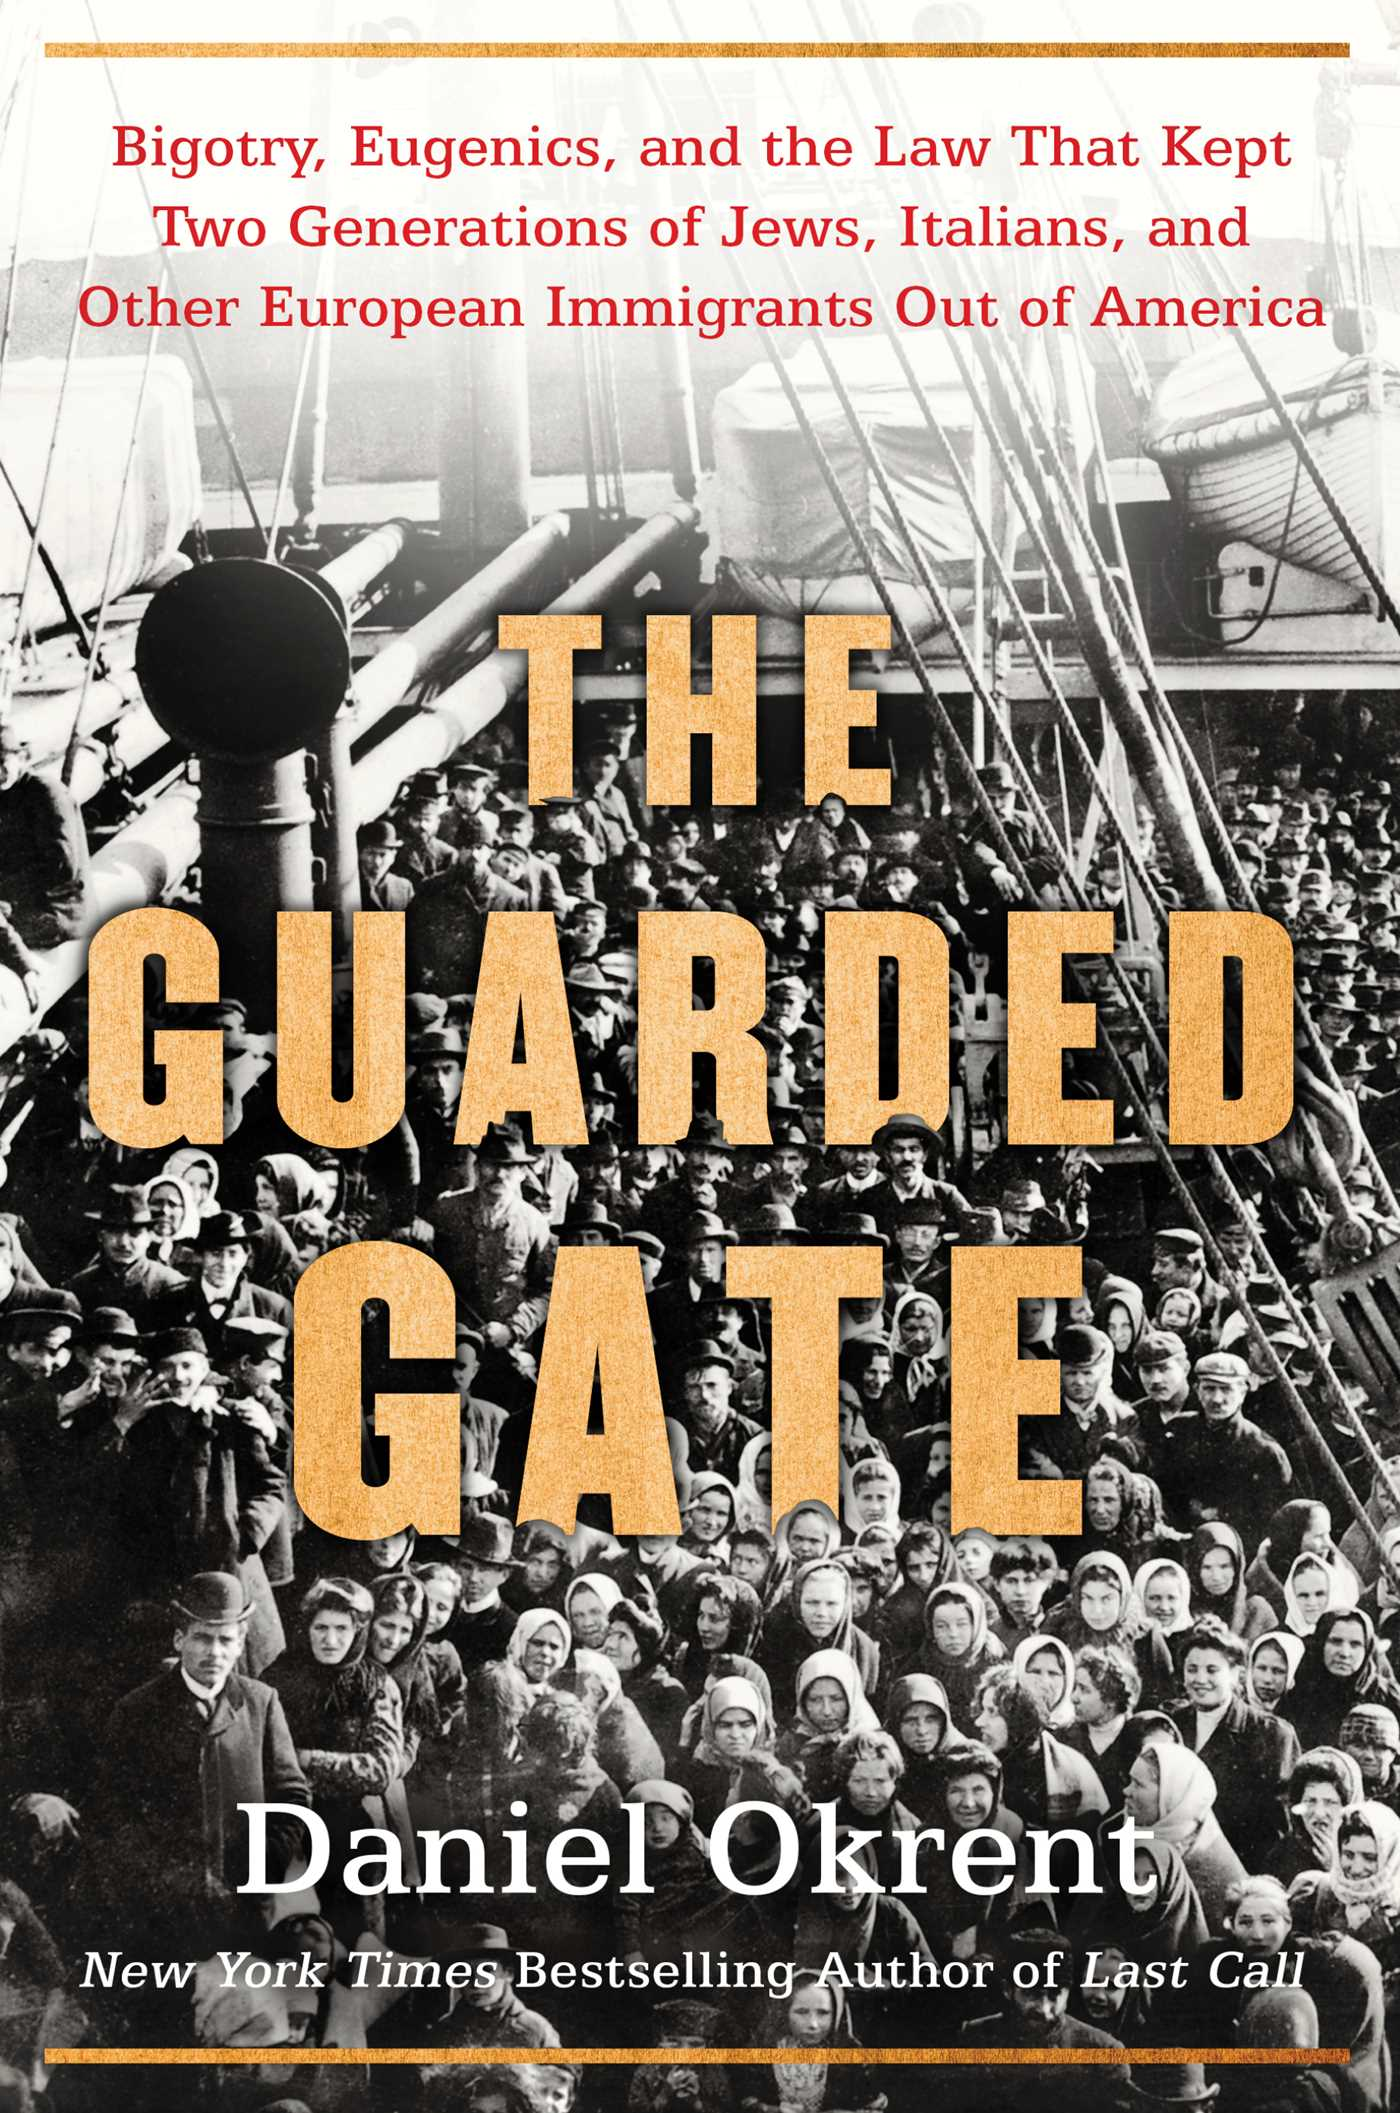 The Guarded Gate | Book by Daniel Okrent | Official ...